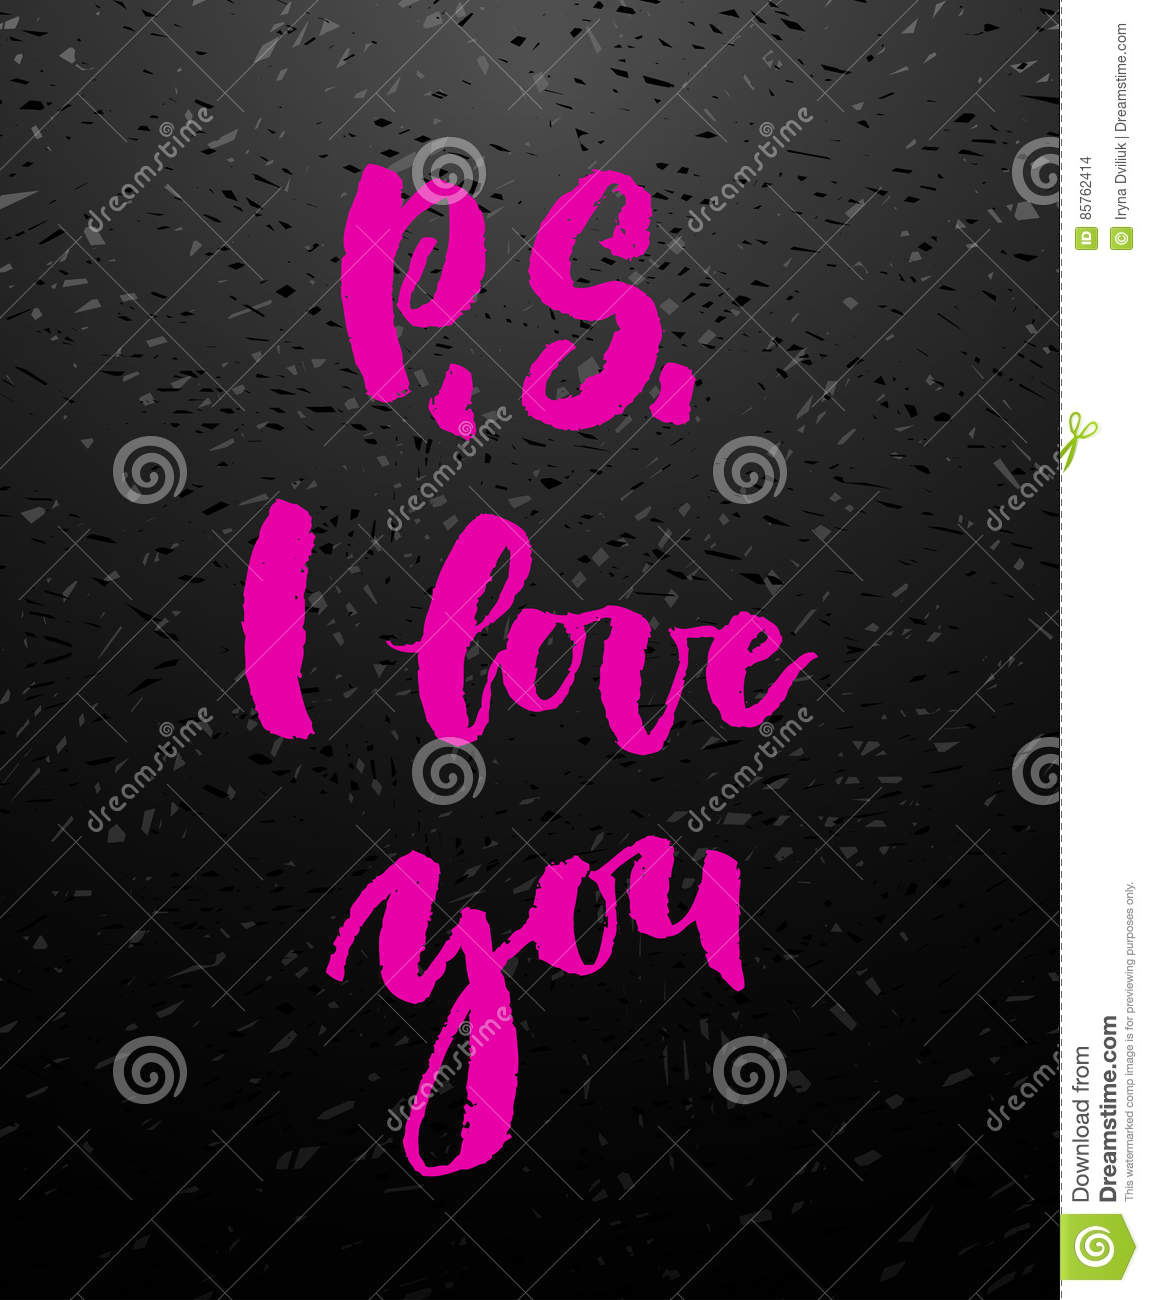 P s i love you greeting card with calligraphy stock vector p s i love you pink calligraphy valentines day romantic quote greeting card handwritten modern brush lover lettering on blackboard m4hsunfo